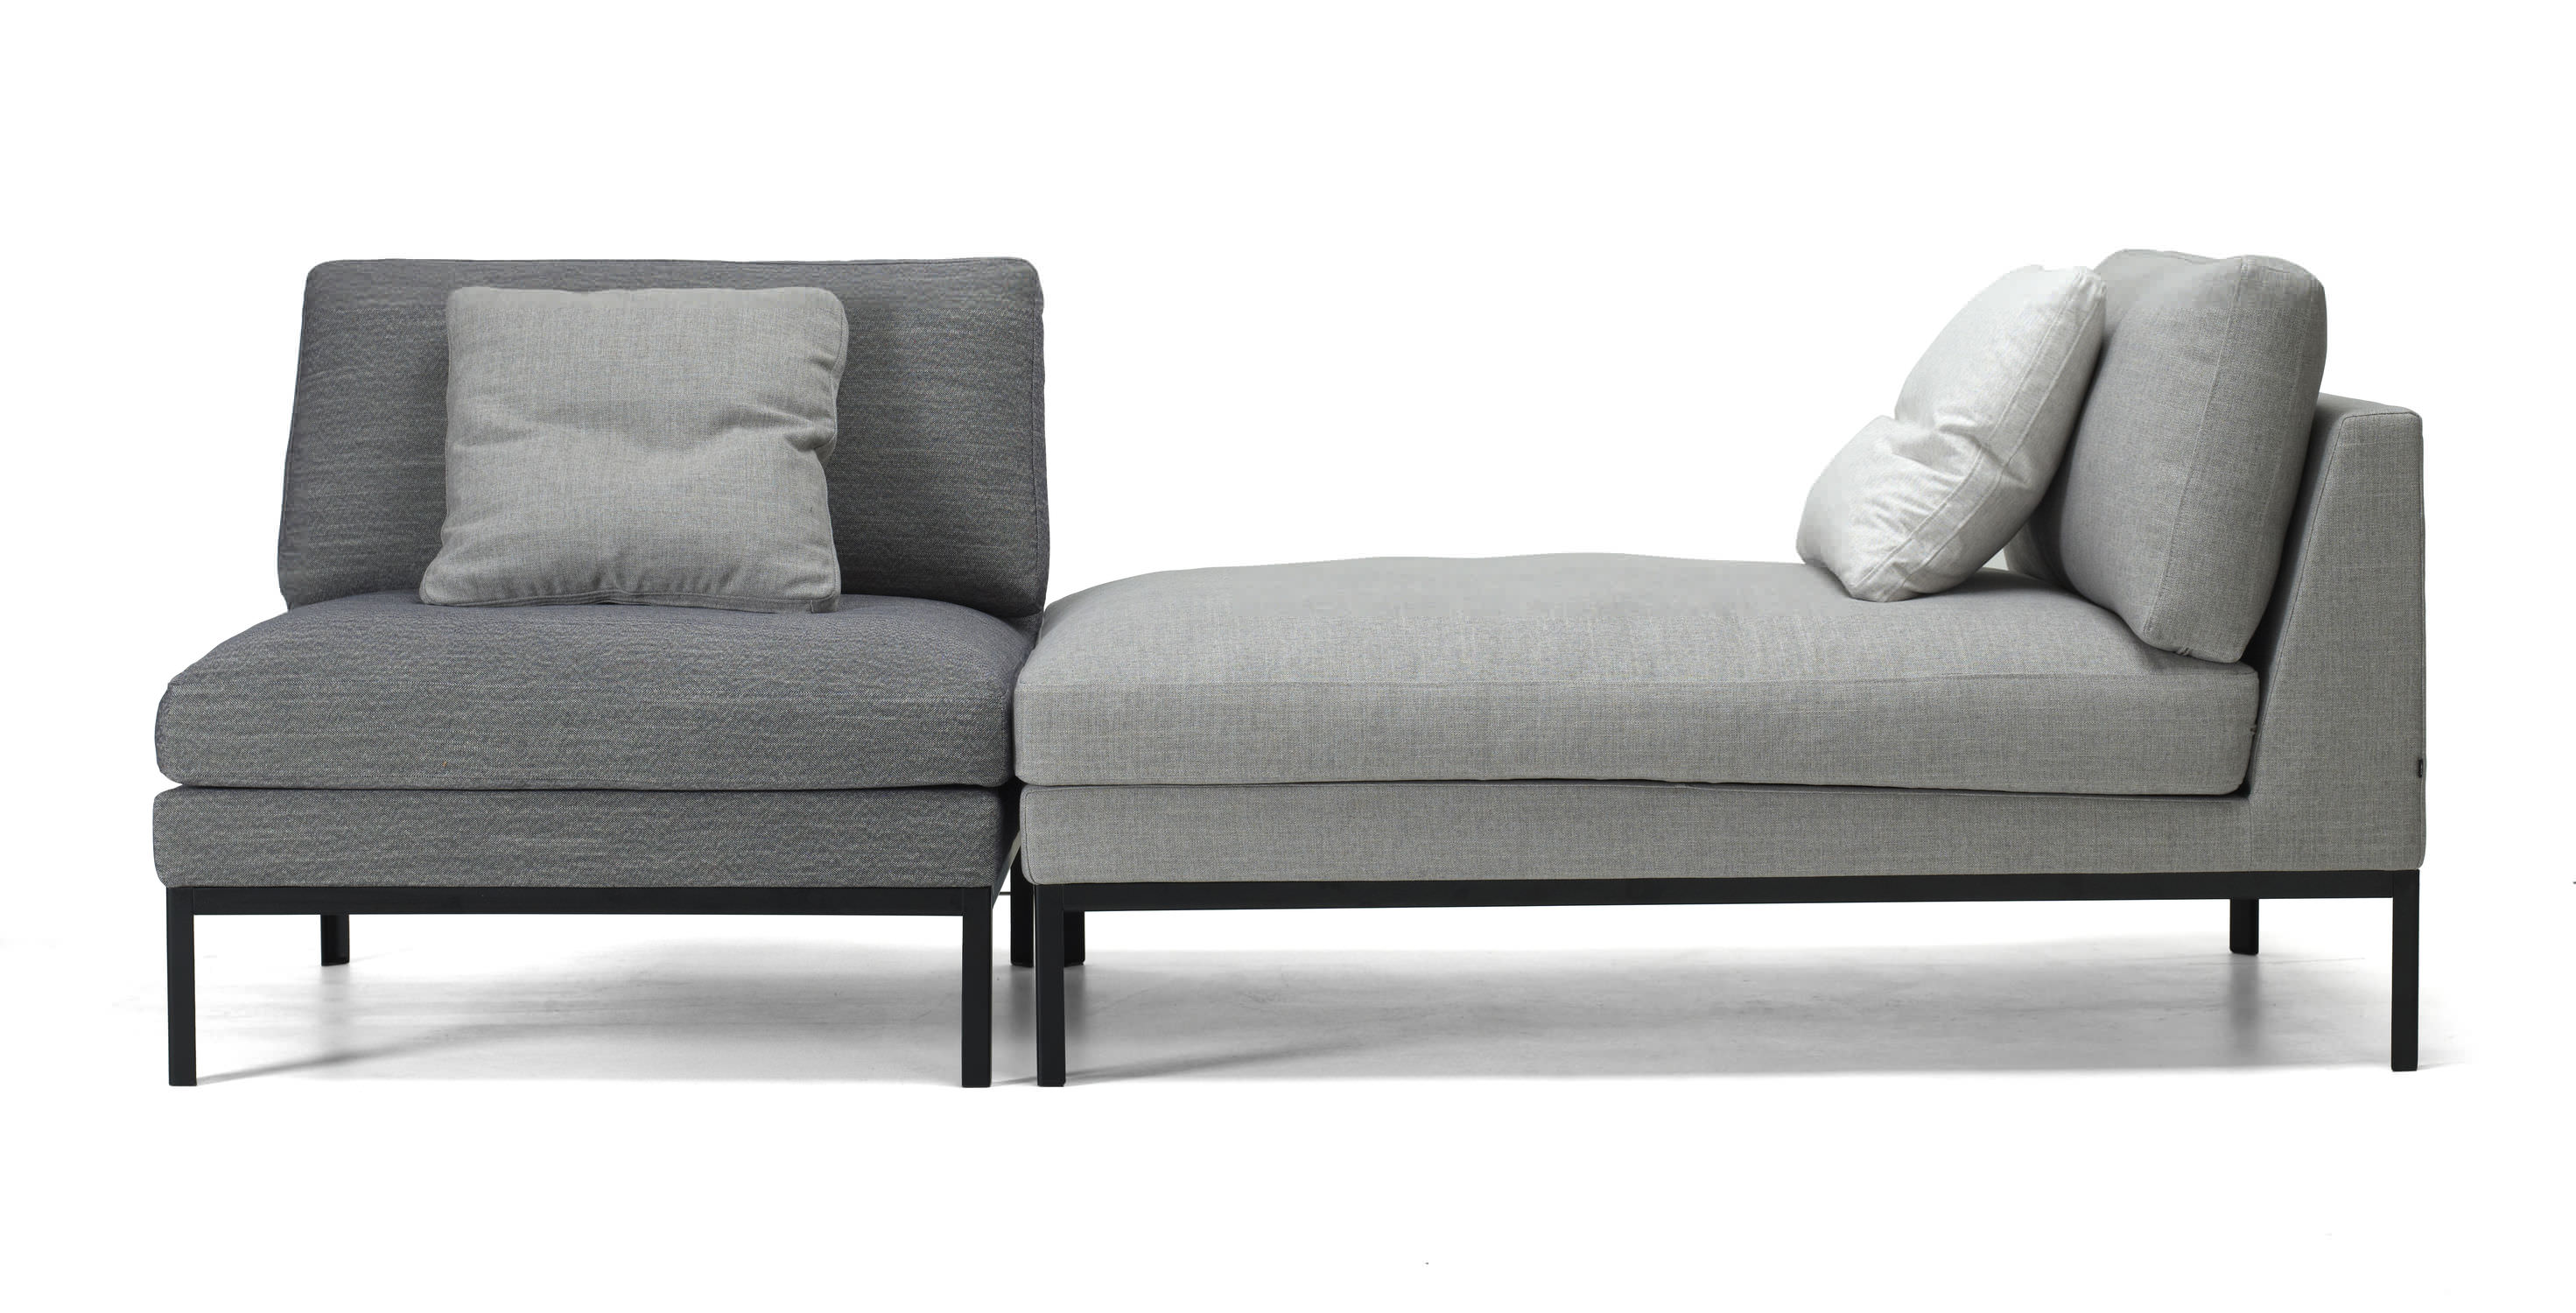 Contemporary Chaise Longue Fabric Join By Emma Olbers Ire  ~ Contemporary Chaise Sofa